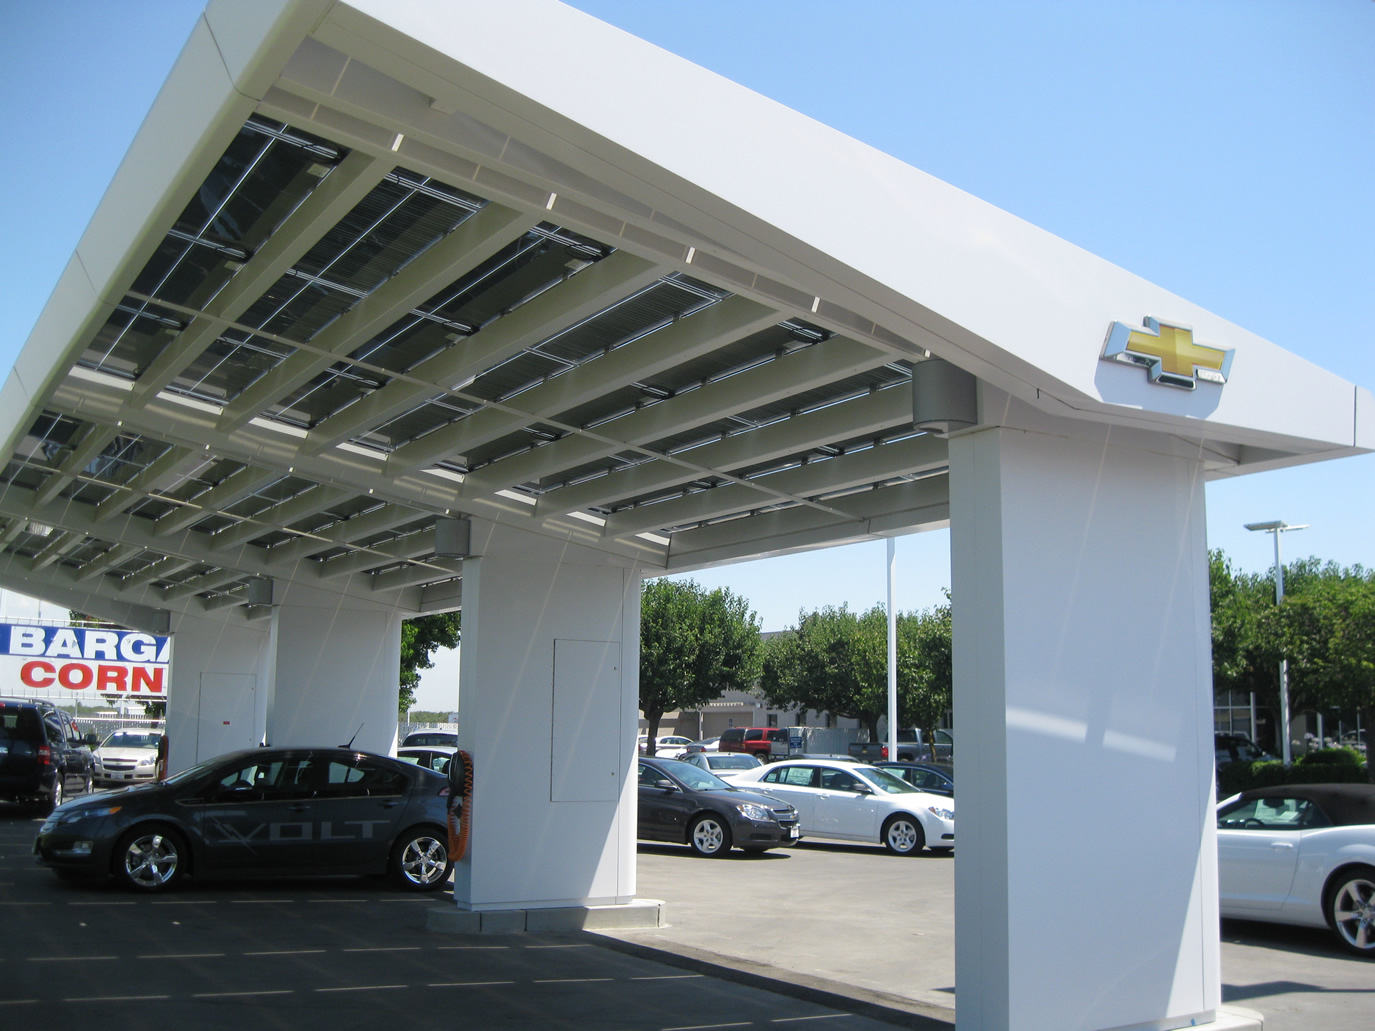 A 2011 Volt parked at the solar charging station.